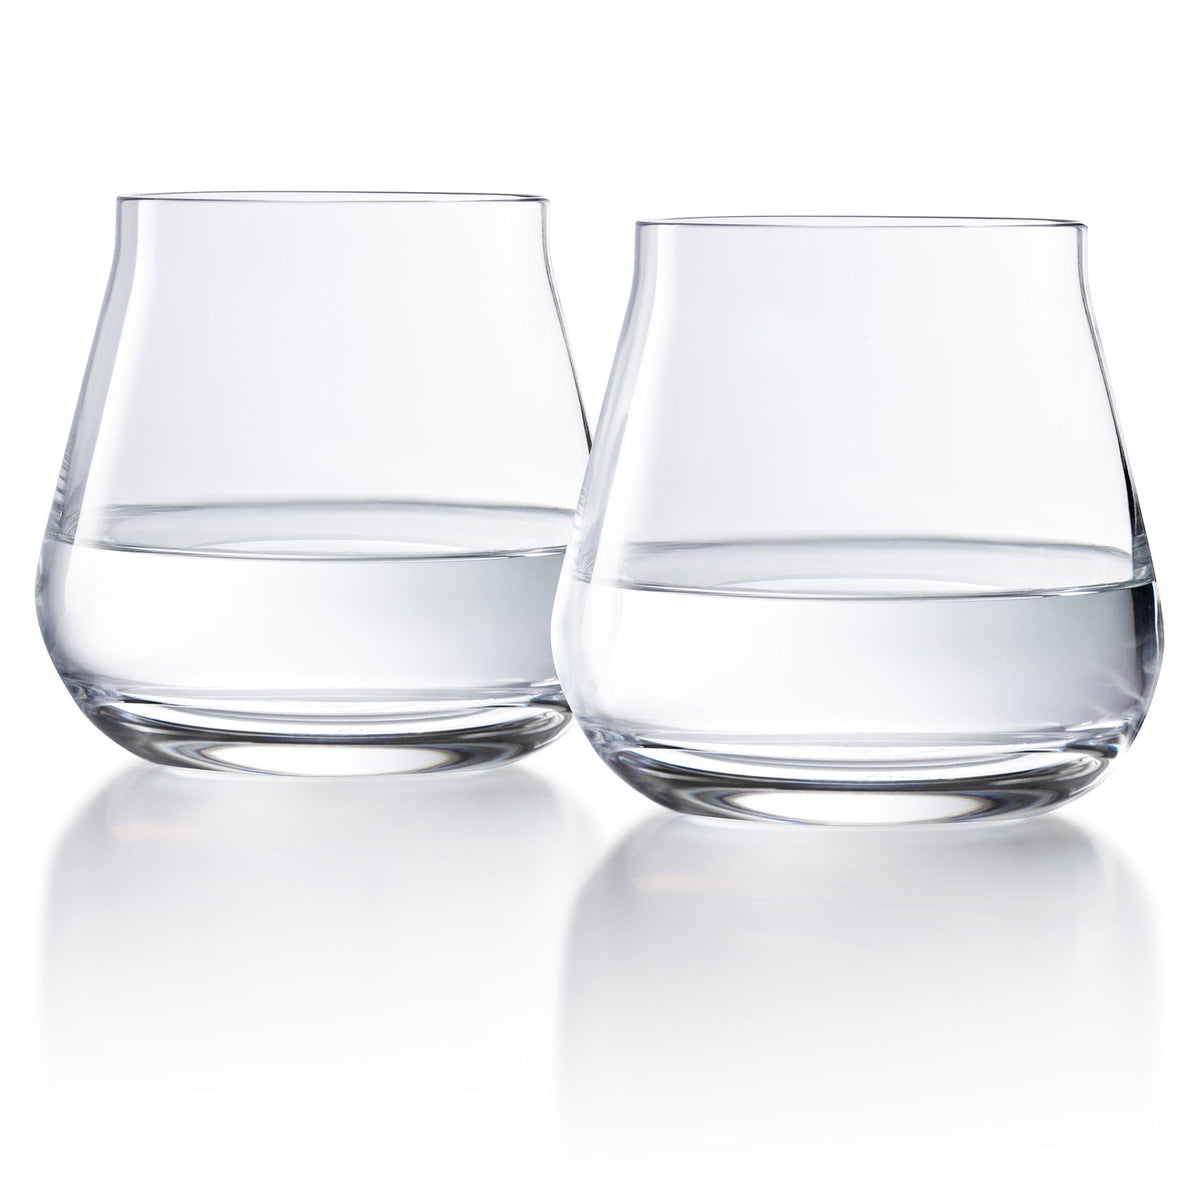 Chateau Baccarat Tumblers, Set of 2